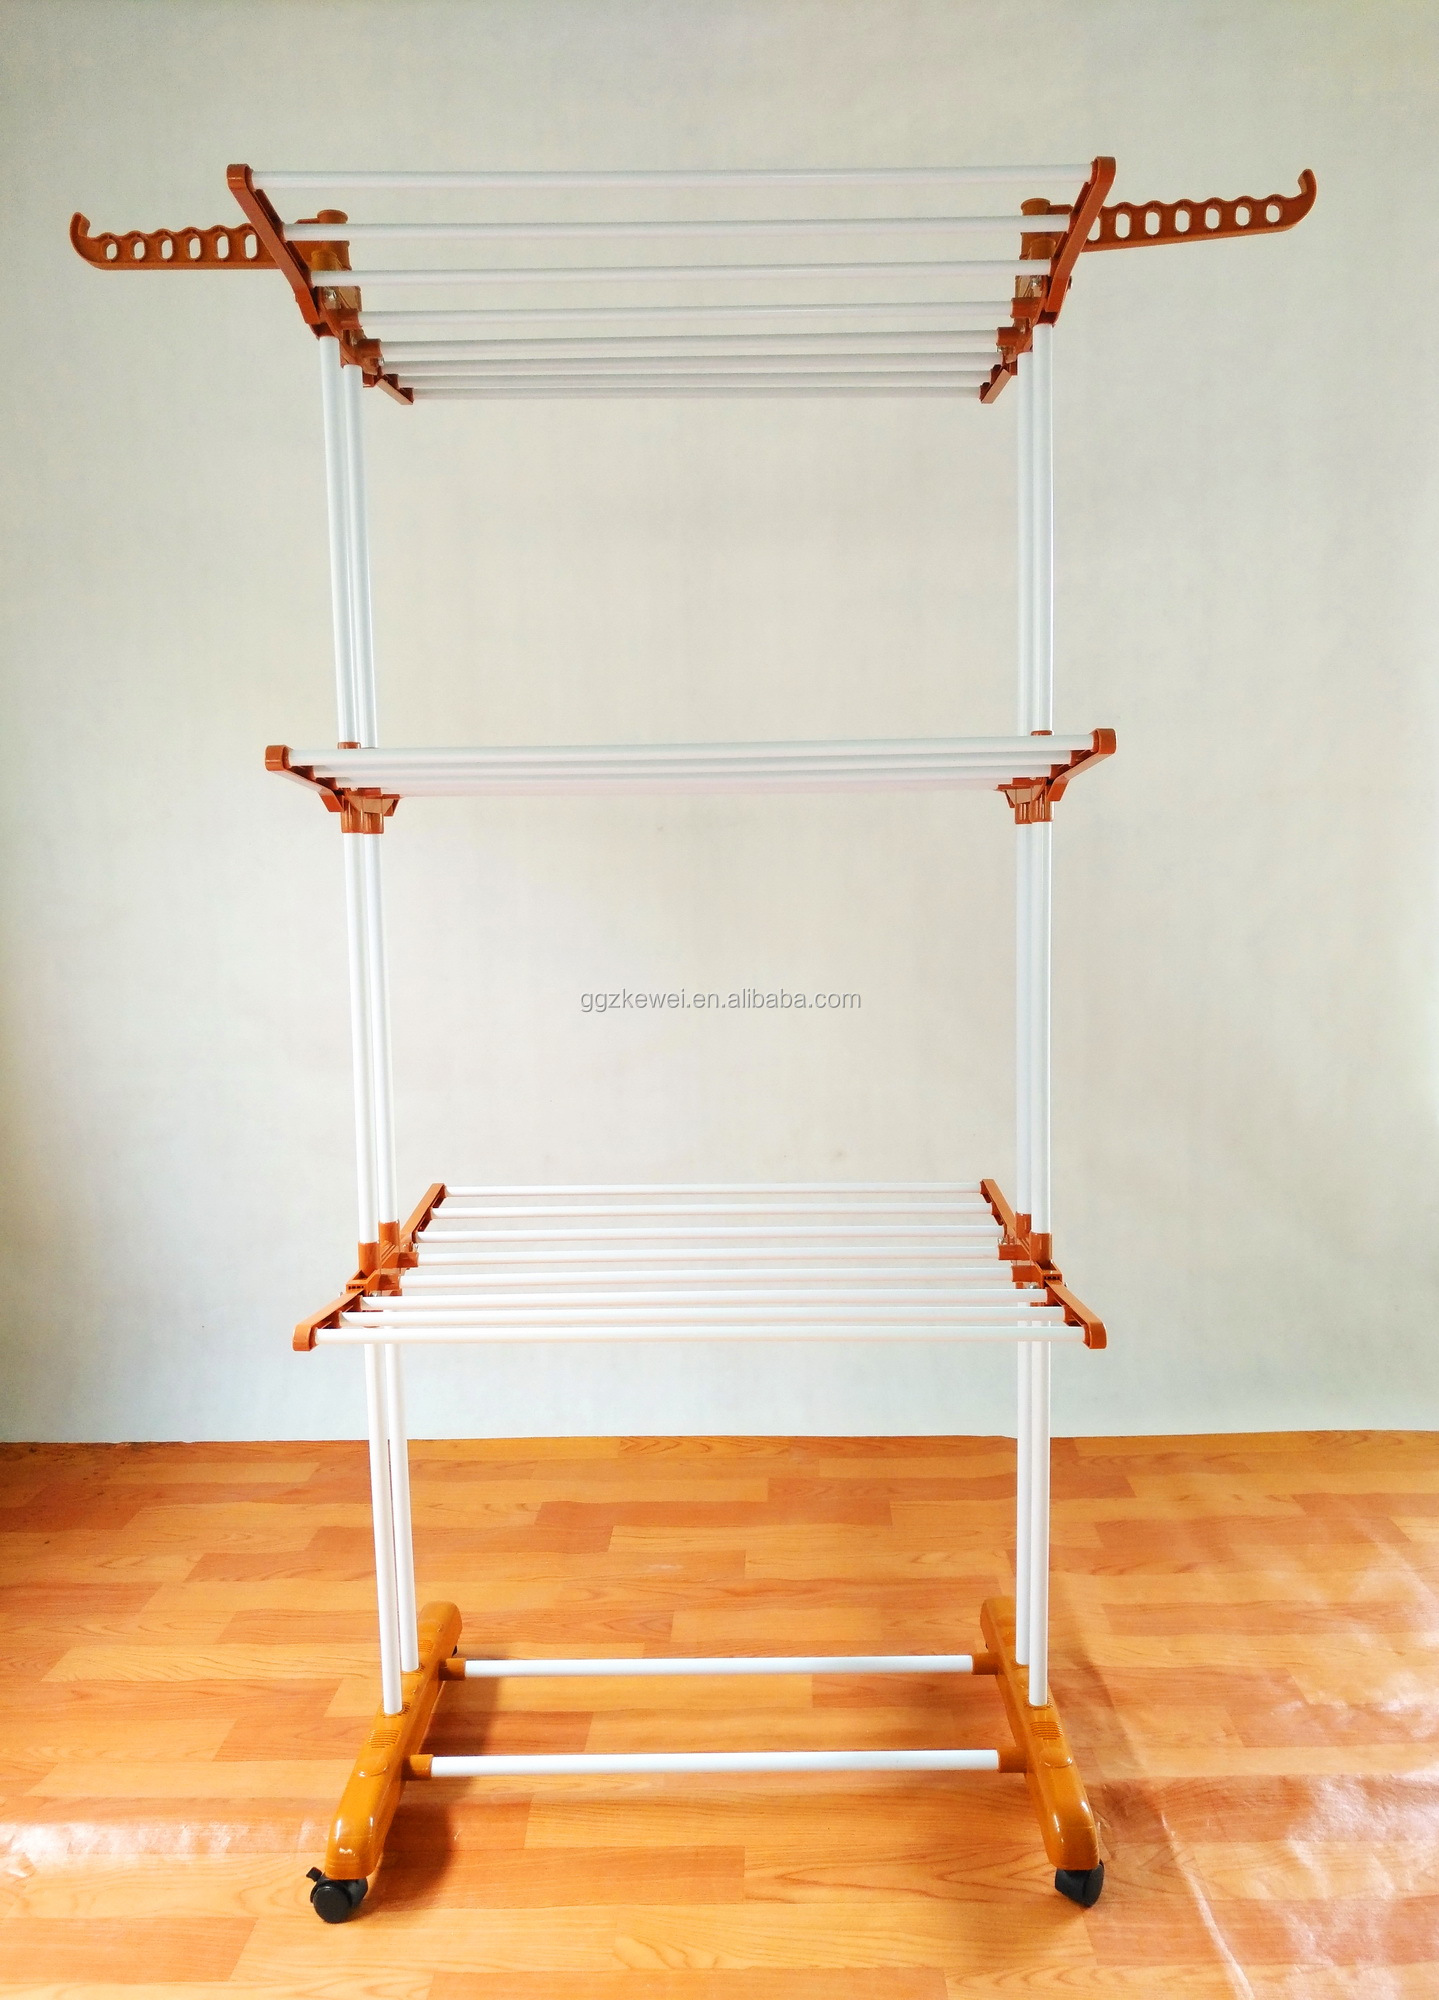 3 Layers Folding Clothes Towel Racks With Wheels , Guangzhou Factory Wholesale , Color Demand For Big Order BS-8031-O